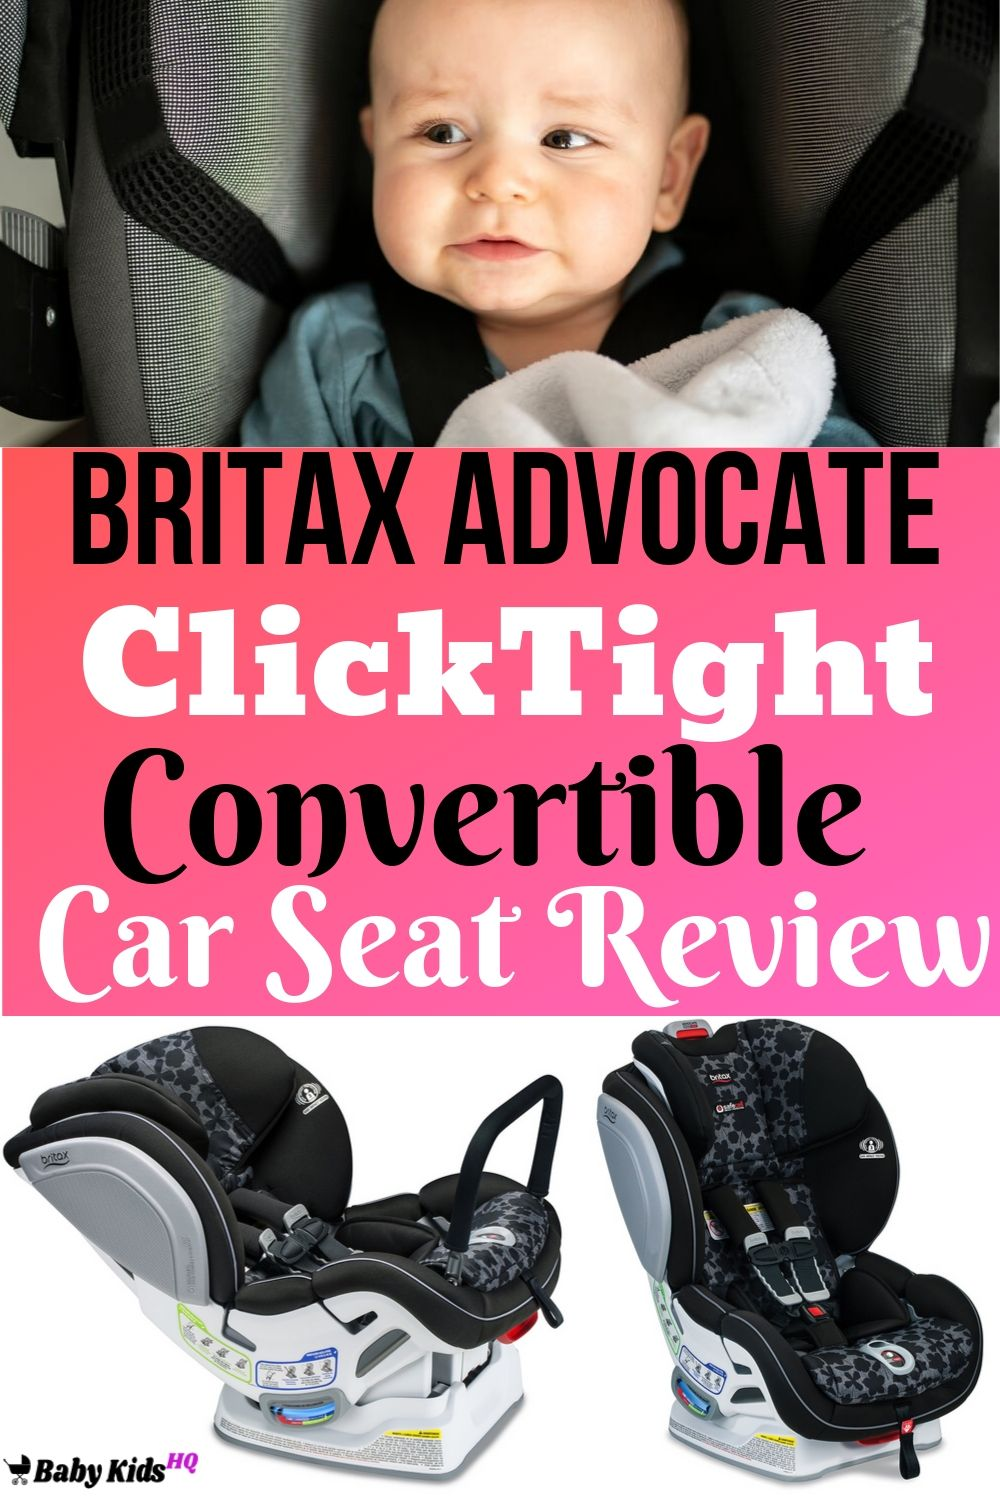 Britax has taken safety beyond the federal standards with the Britax Advocate ClickTight convertible car seat. This does the job of both what an infant and toddler car seat would do.With the advanced safety features and body insert you don't need to worry about whether this car seat will be too big for a small baby.